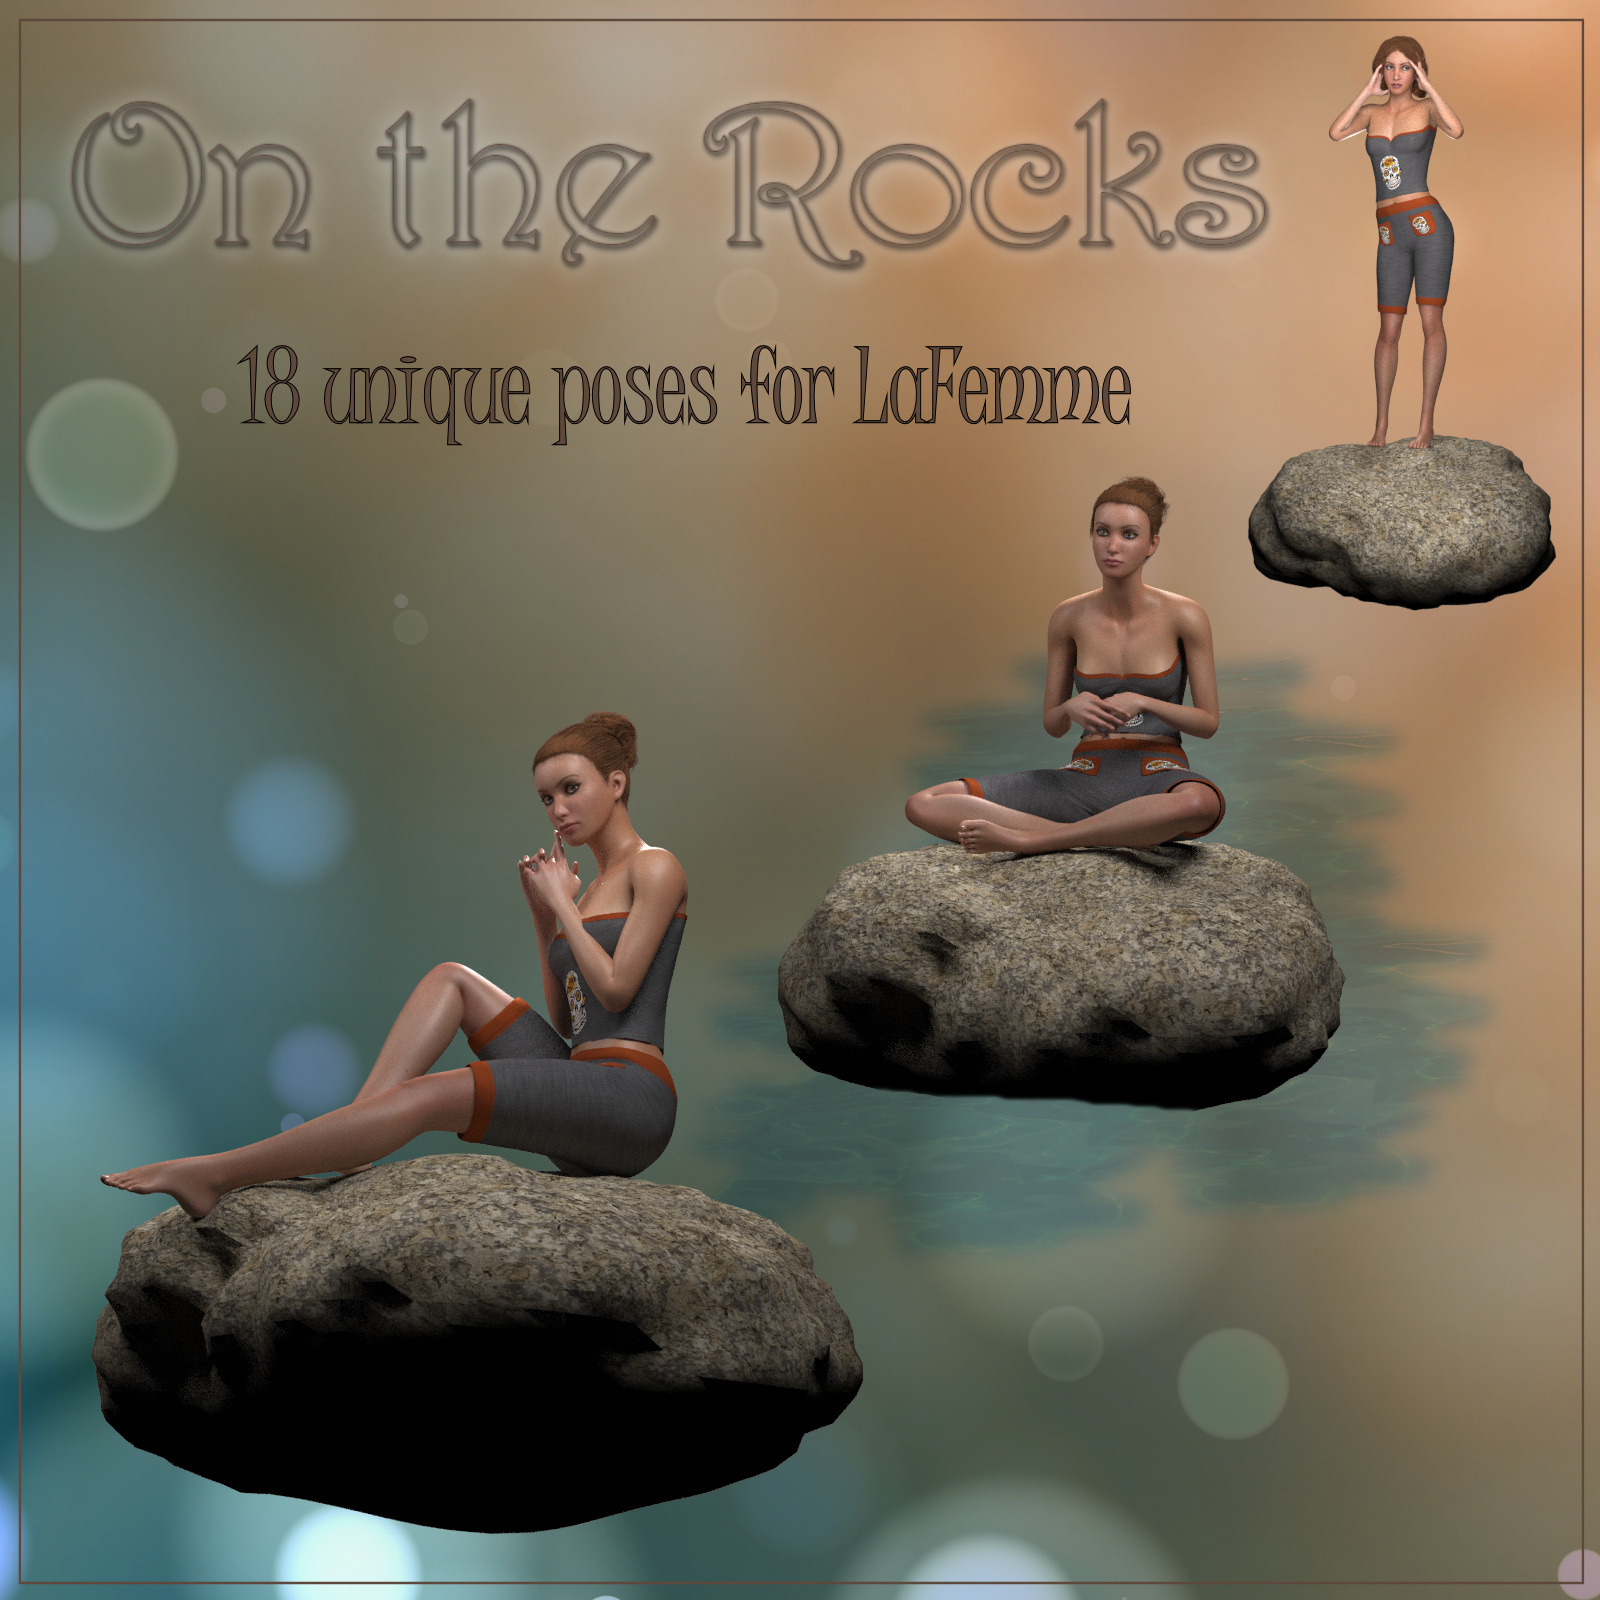 On The Rocks - Poses for La Femme by pixpax